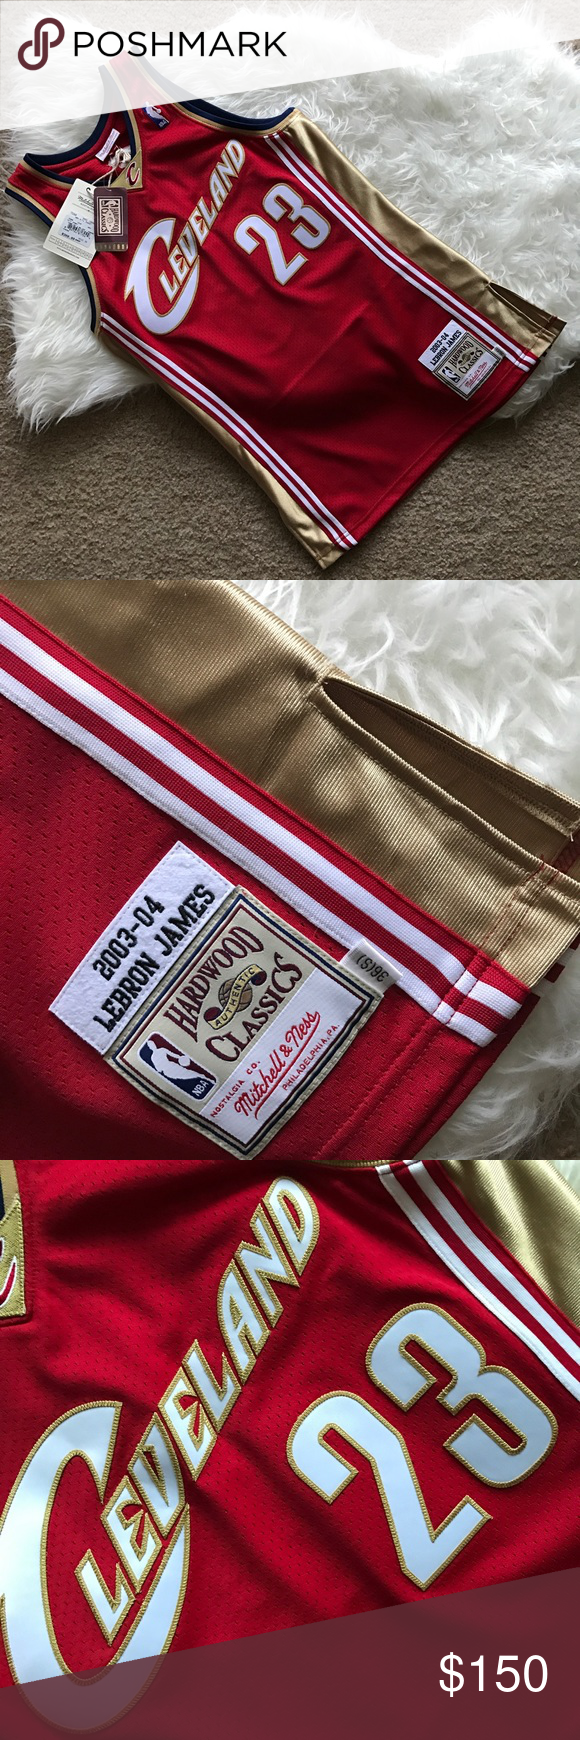 huge discount 282af 34732 Mitchell & Ness LeBron James Rookie Jersey Up for grabs is ...